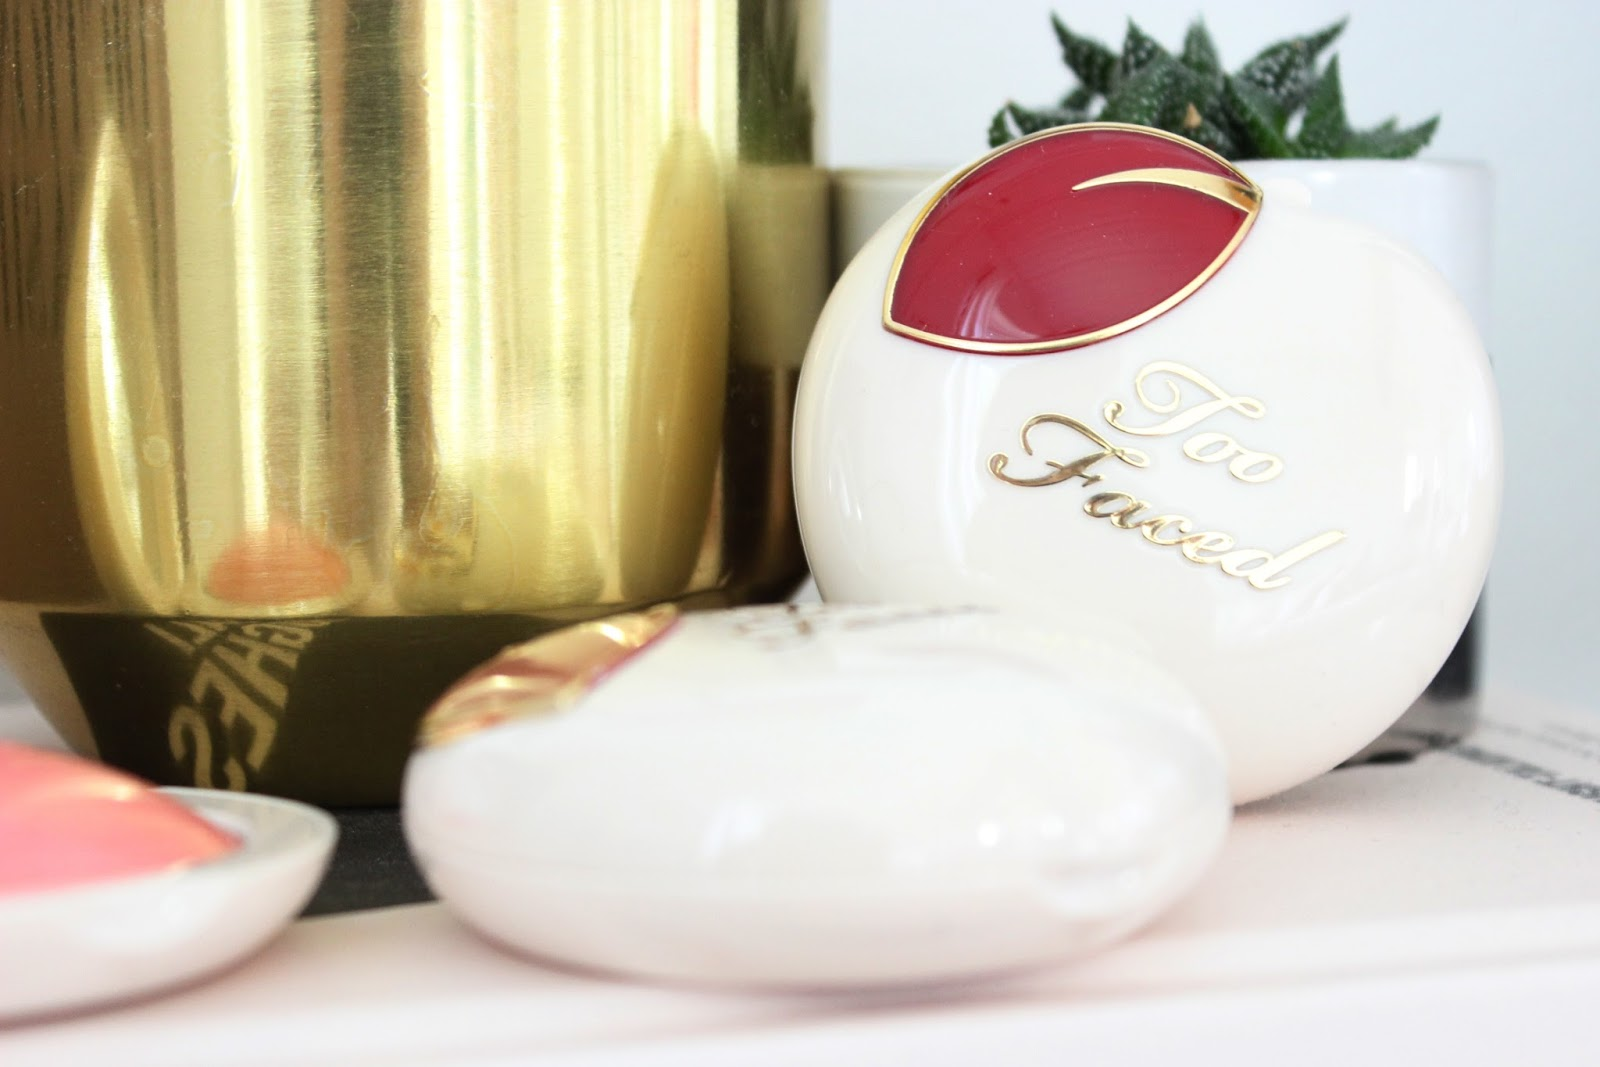 peaches and cream, too faced, peach my cheeks, cream blush, makeup review, makeup, makeup swatches, blush, toronto blogger